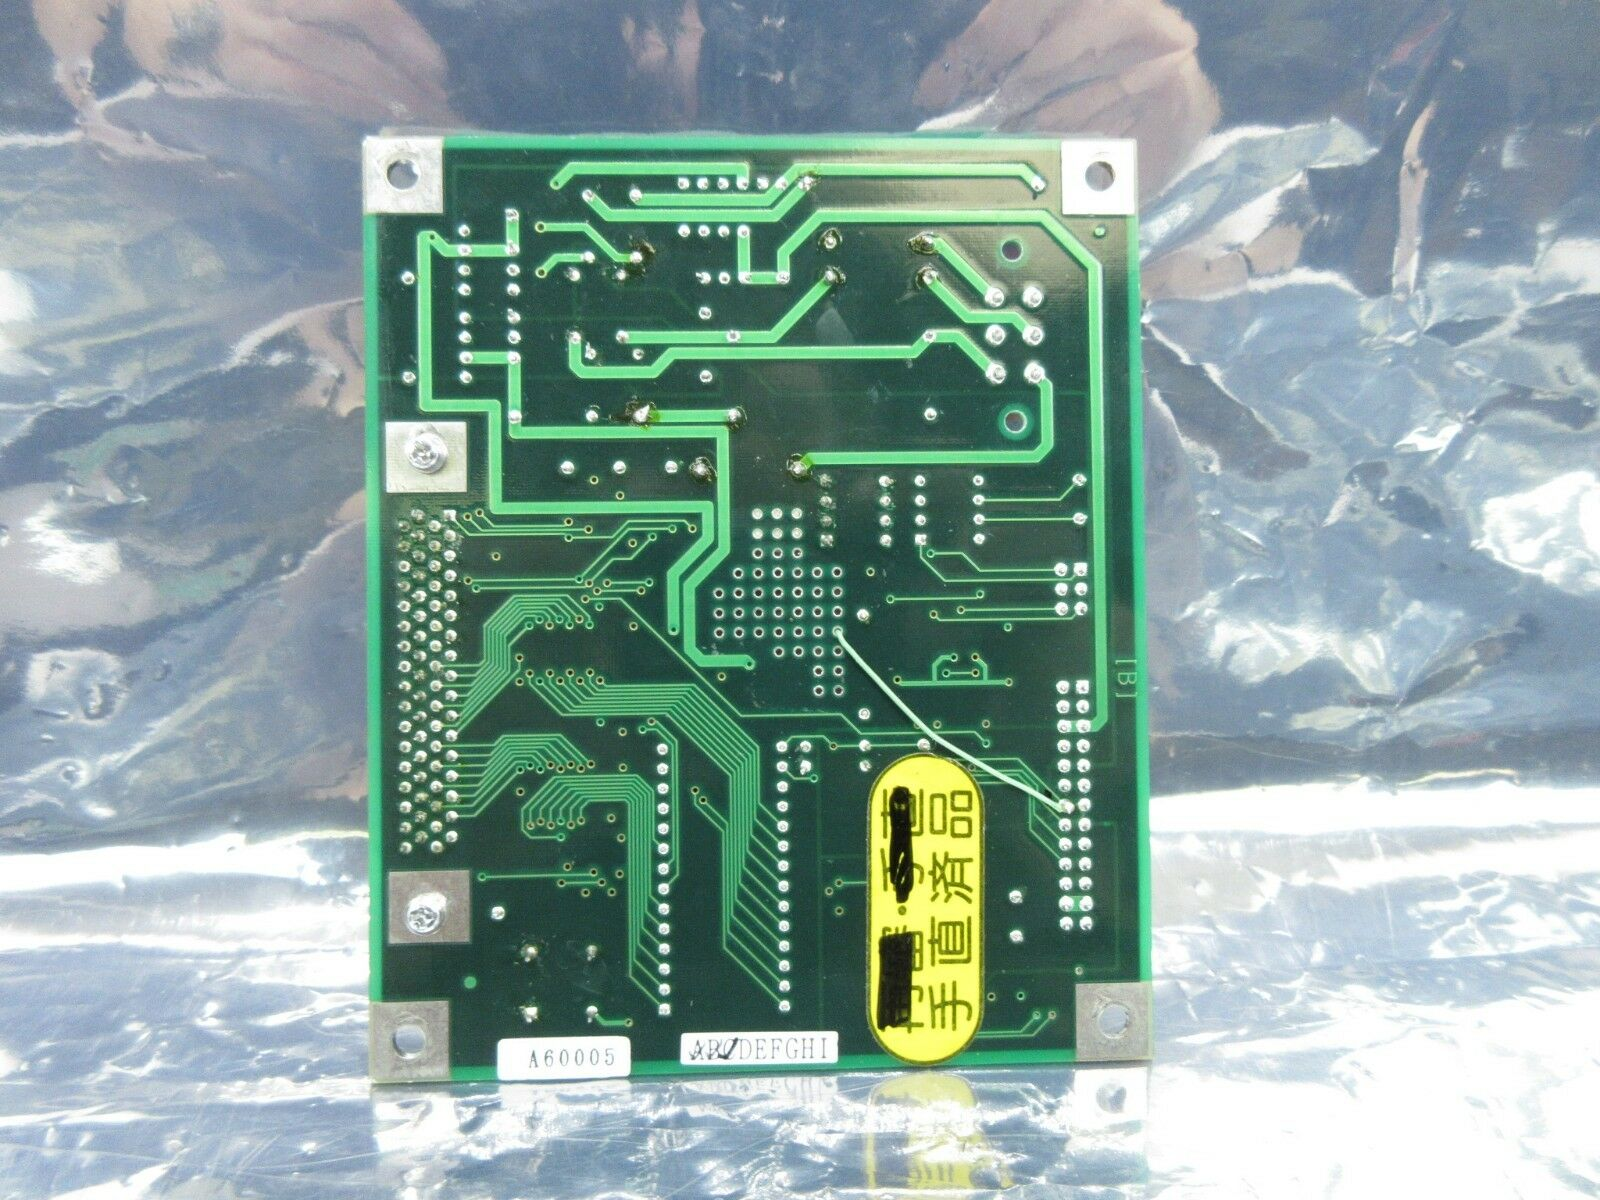 Nikon 4S007-795 Interface Control Board PCB XB-STGA/D NSR-S202A Used